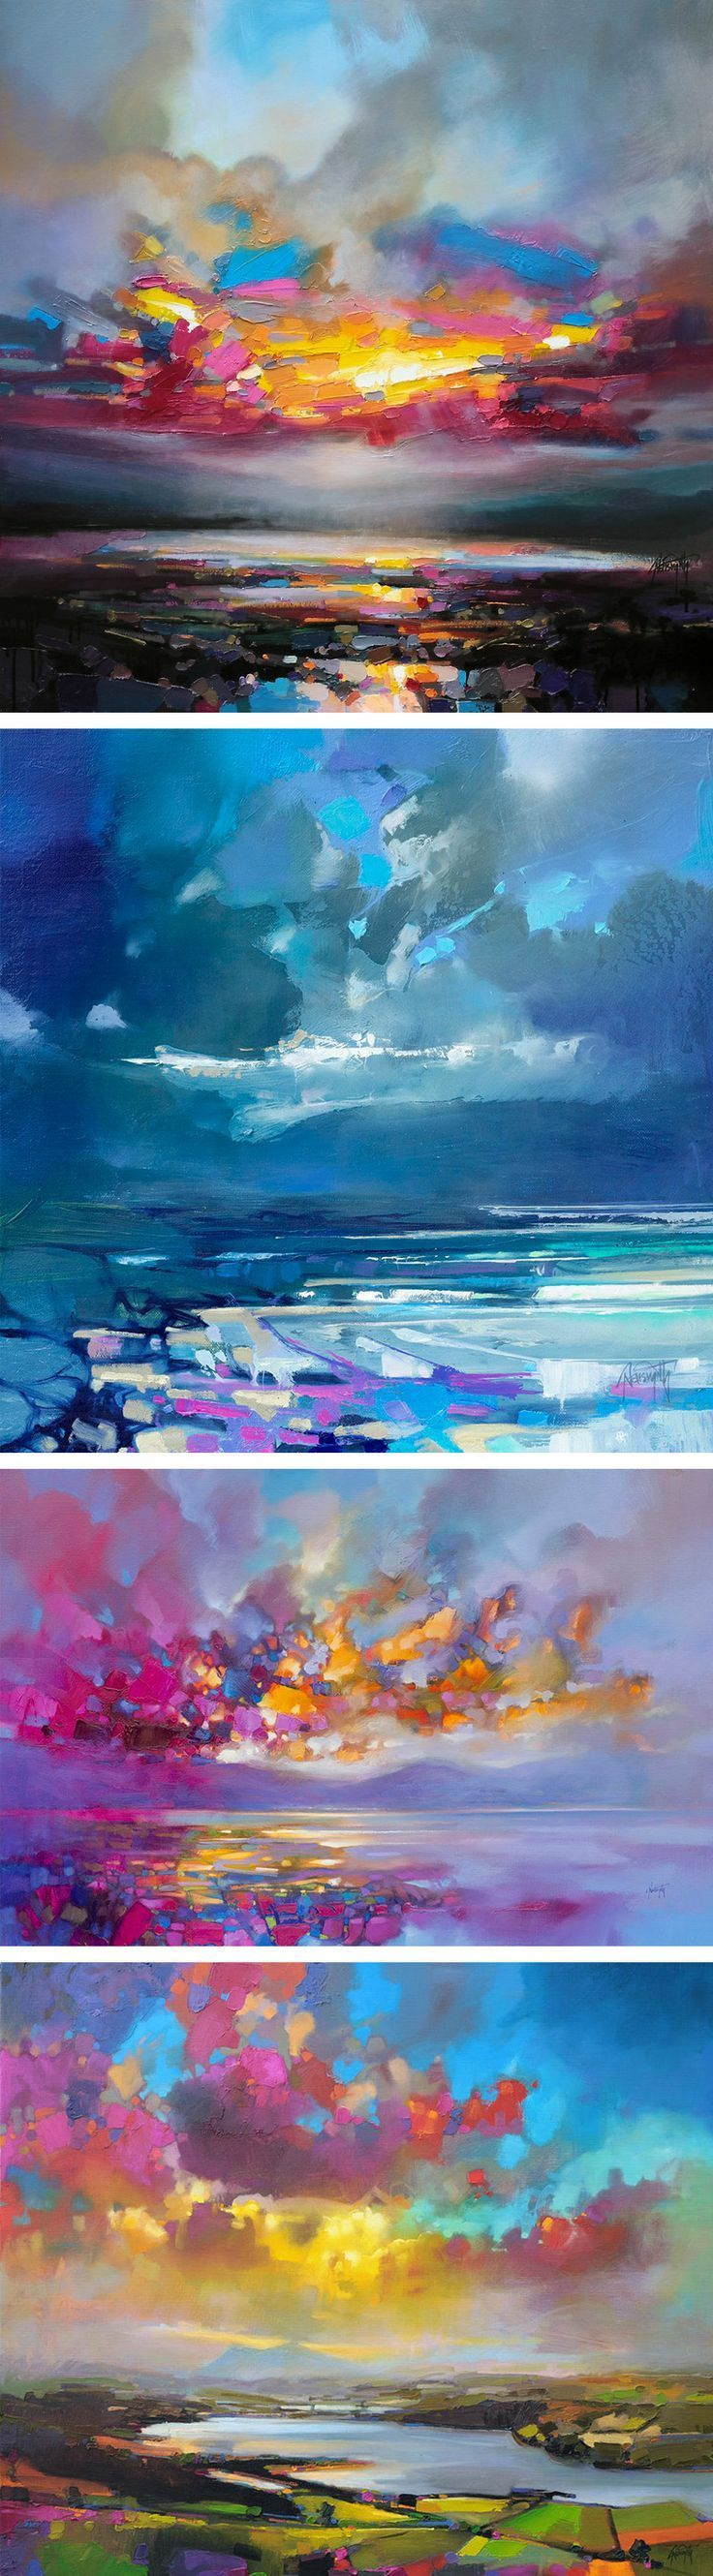 Vibrant Oil Paintings of Scottish Landscapes by Scott Naismith More